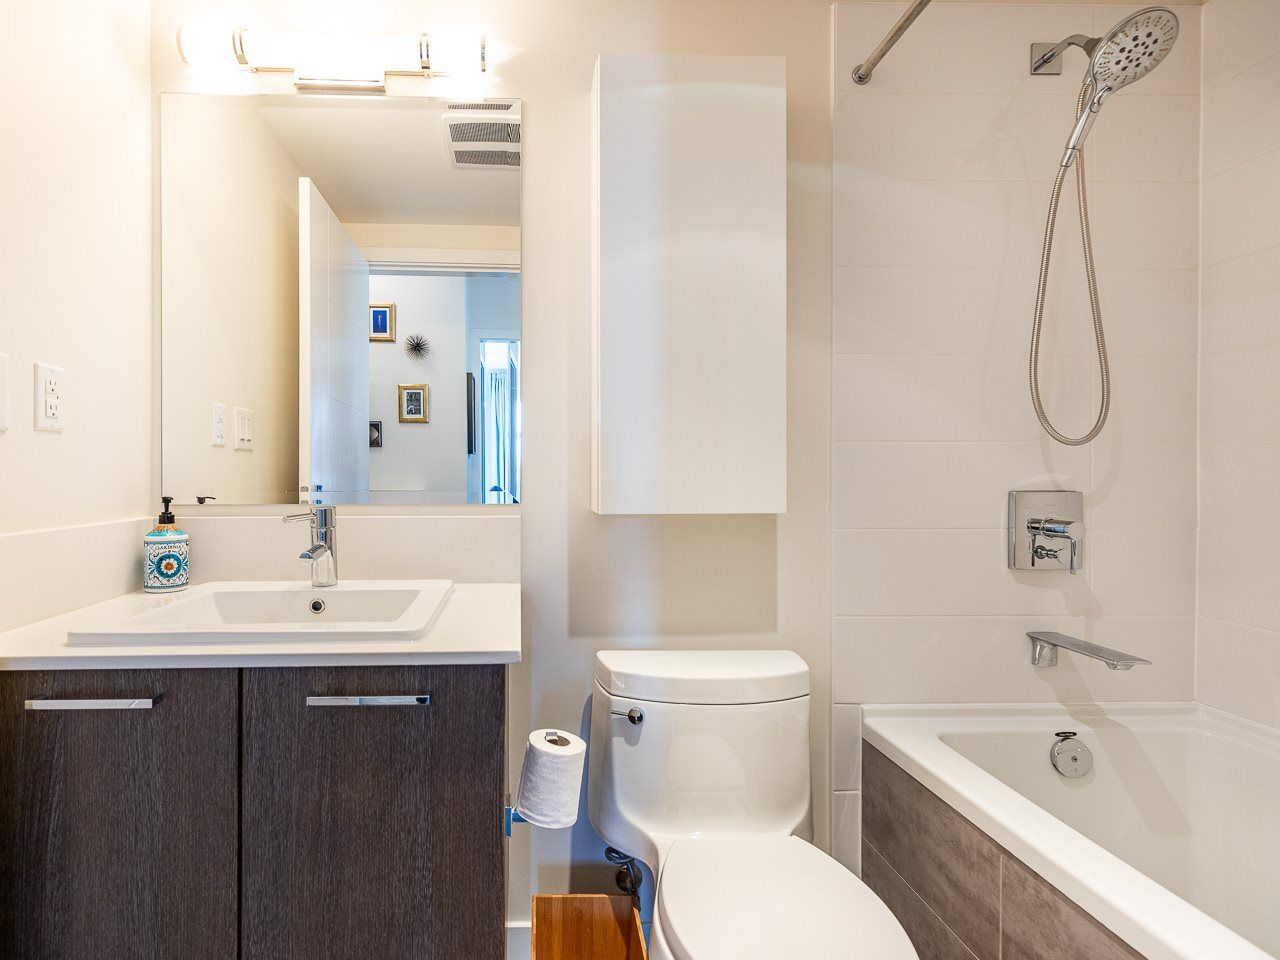 Photo 13: Photos: 306 202 E 24TH AVENUE in Vancouver: Main Condo for sale (Vancouver East)  : MLS®# R2406713